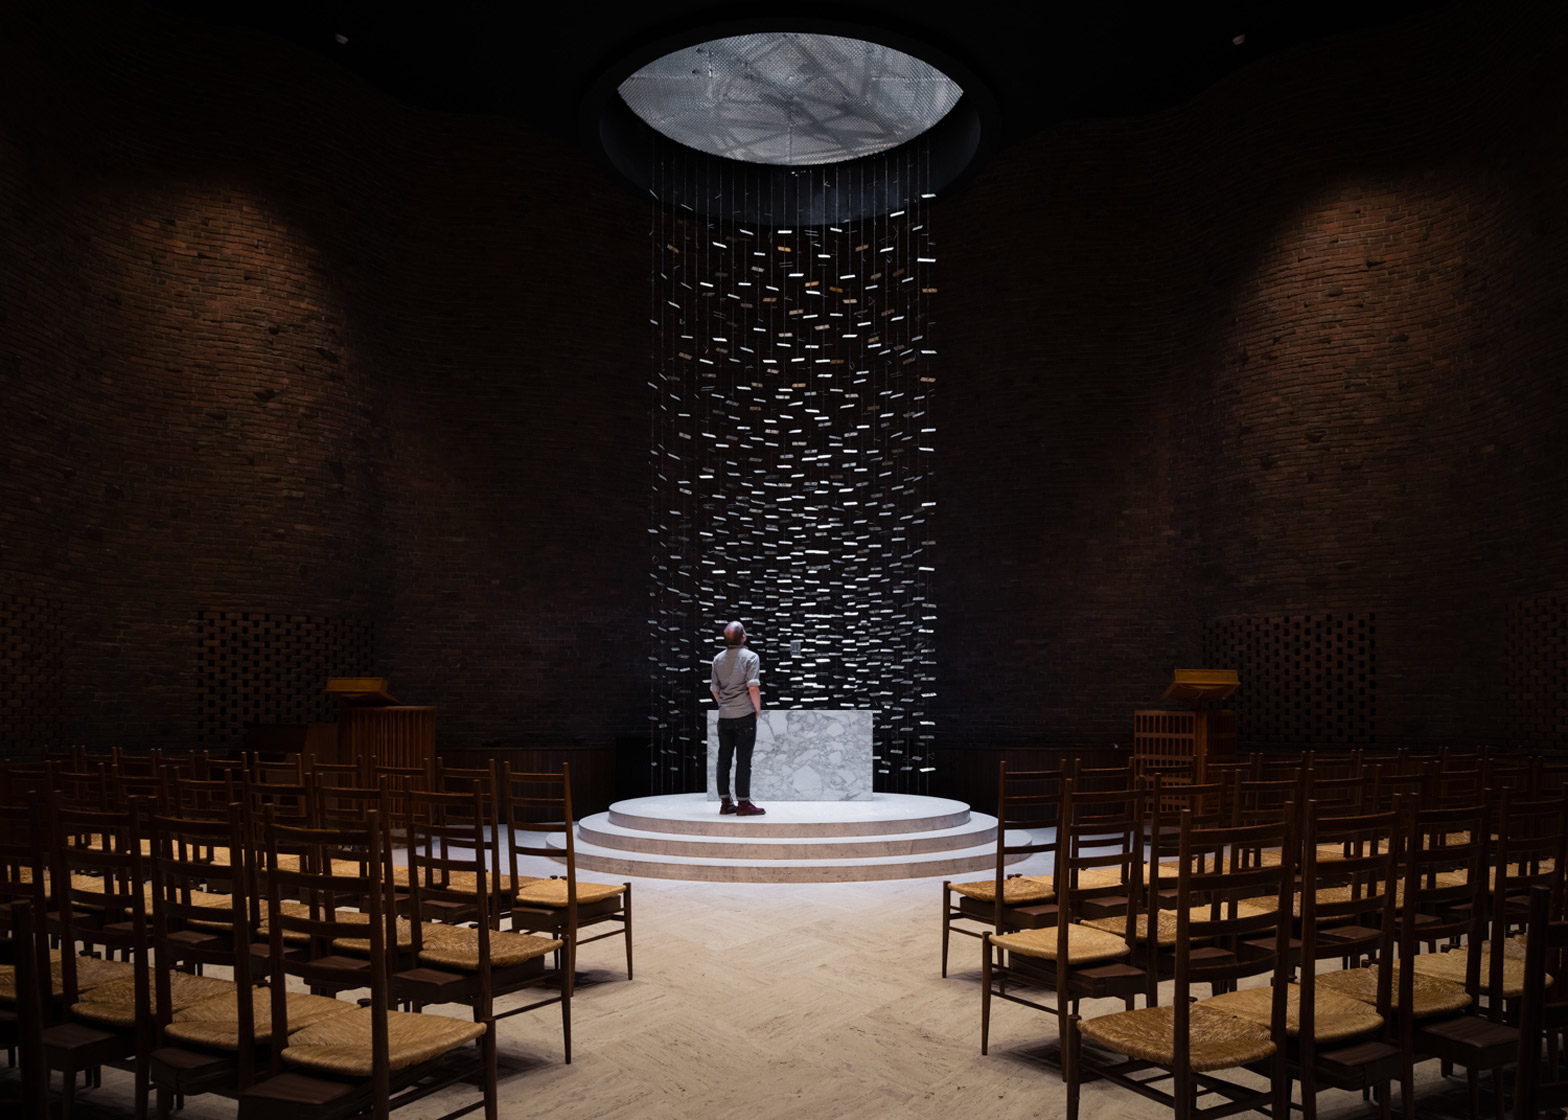 mit-chapel-eero-saarinen-photography-jim-stephenson_dezeen_1568_5